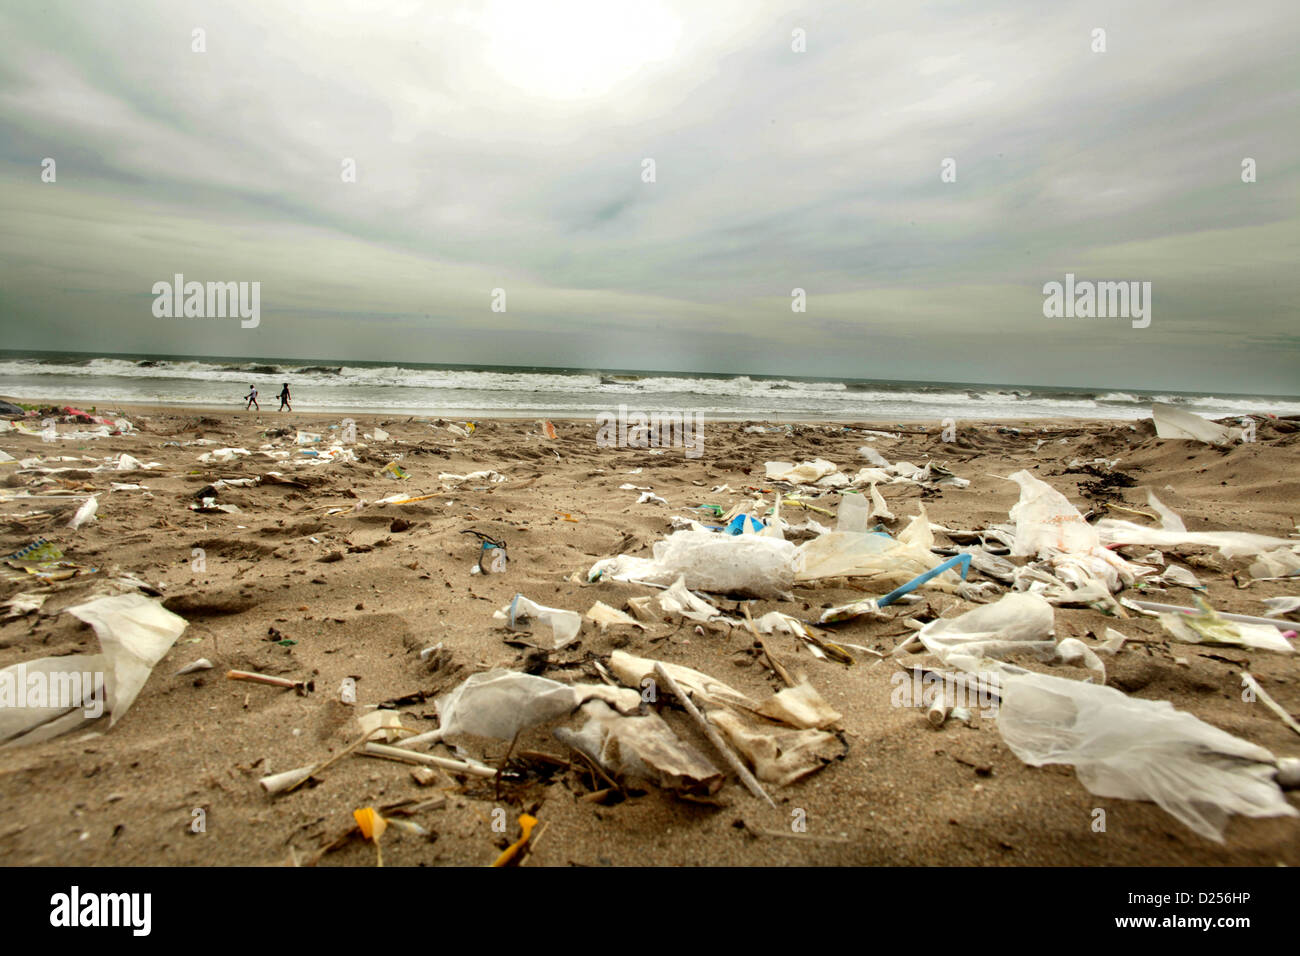 Bali's Pollution Issues,  Beach covered in garbage Stock Photo